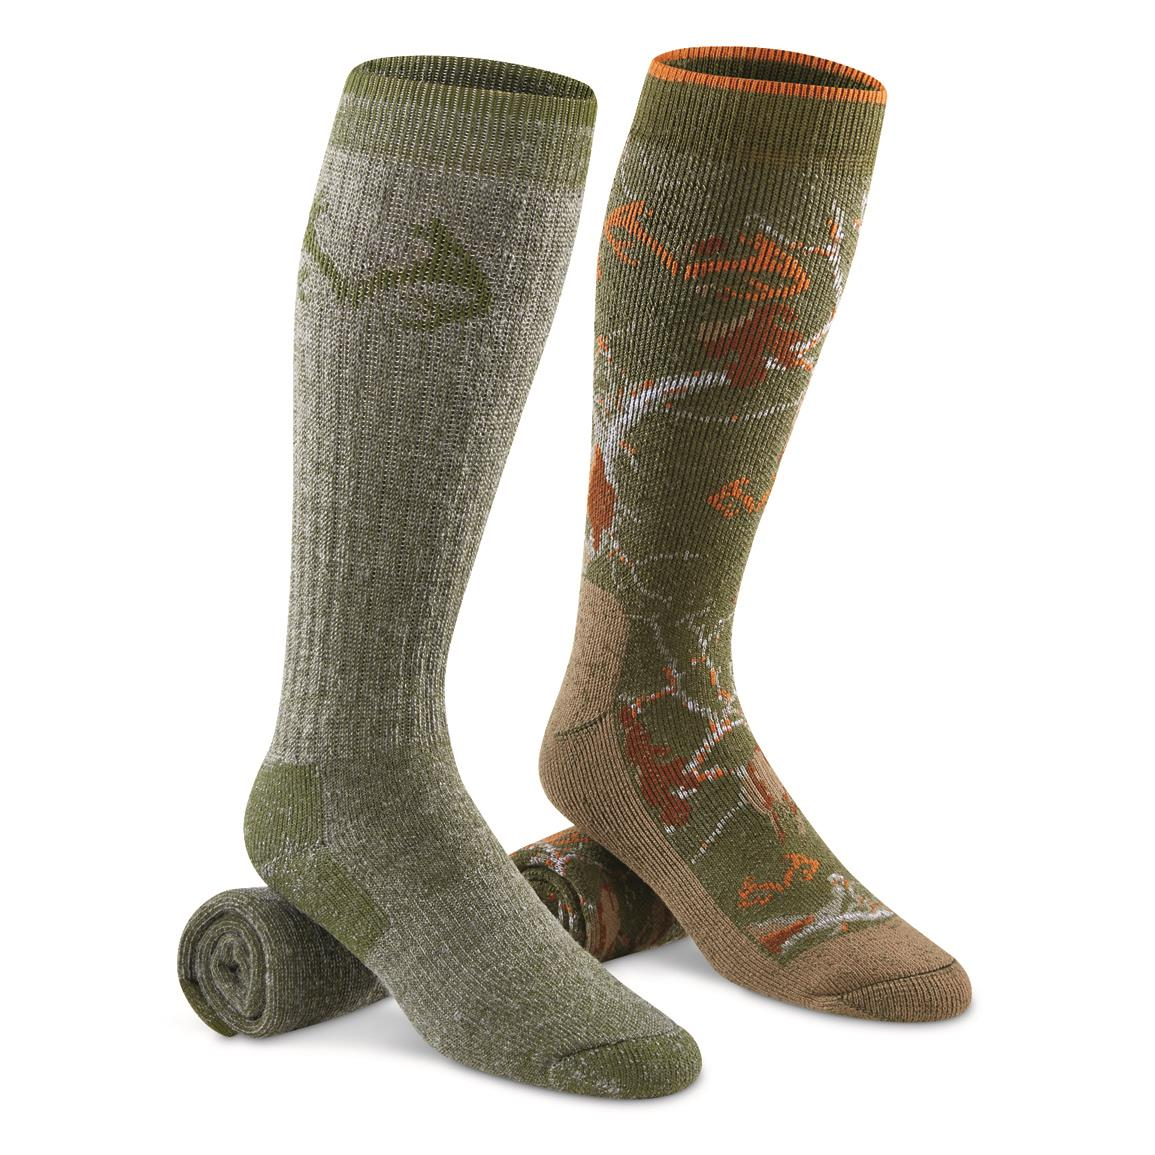 Realtree Men's Merino Wool Blend Boot Socks, 2 Pairs